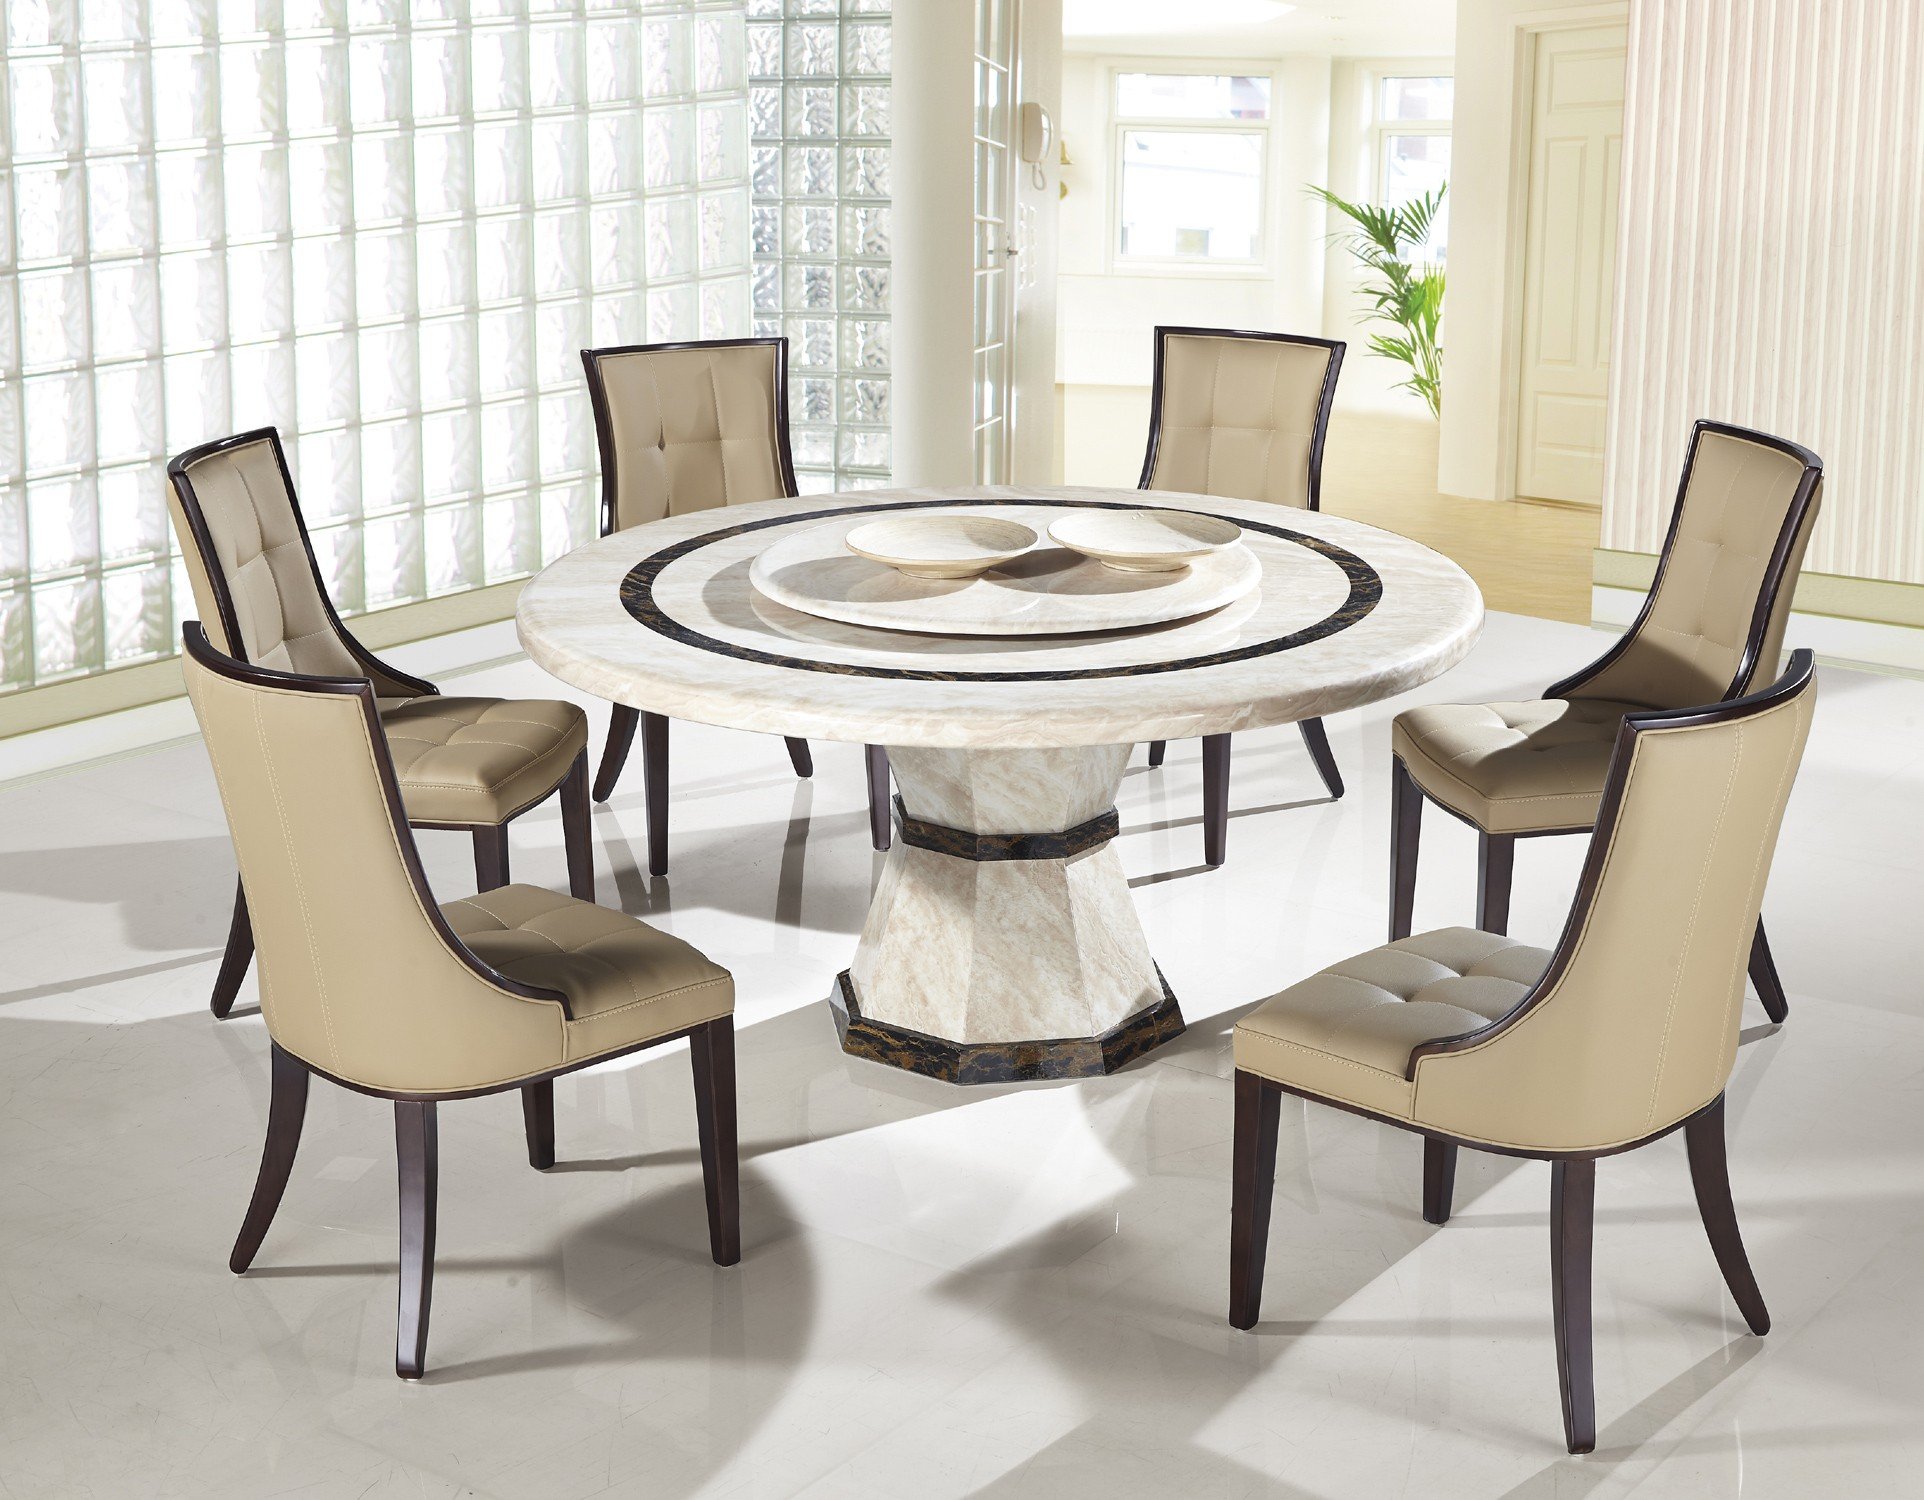 Modern round dining set shop for affordable home for Modern round dining table